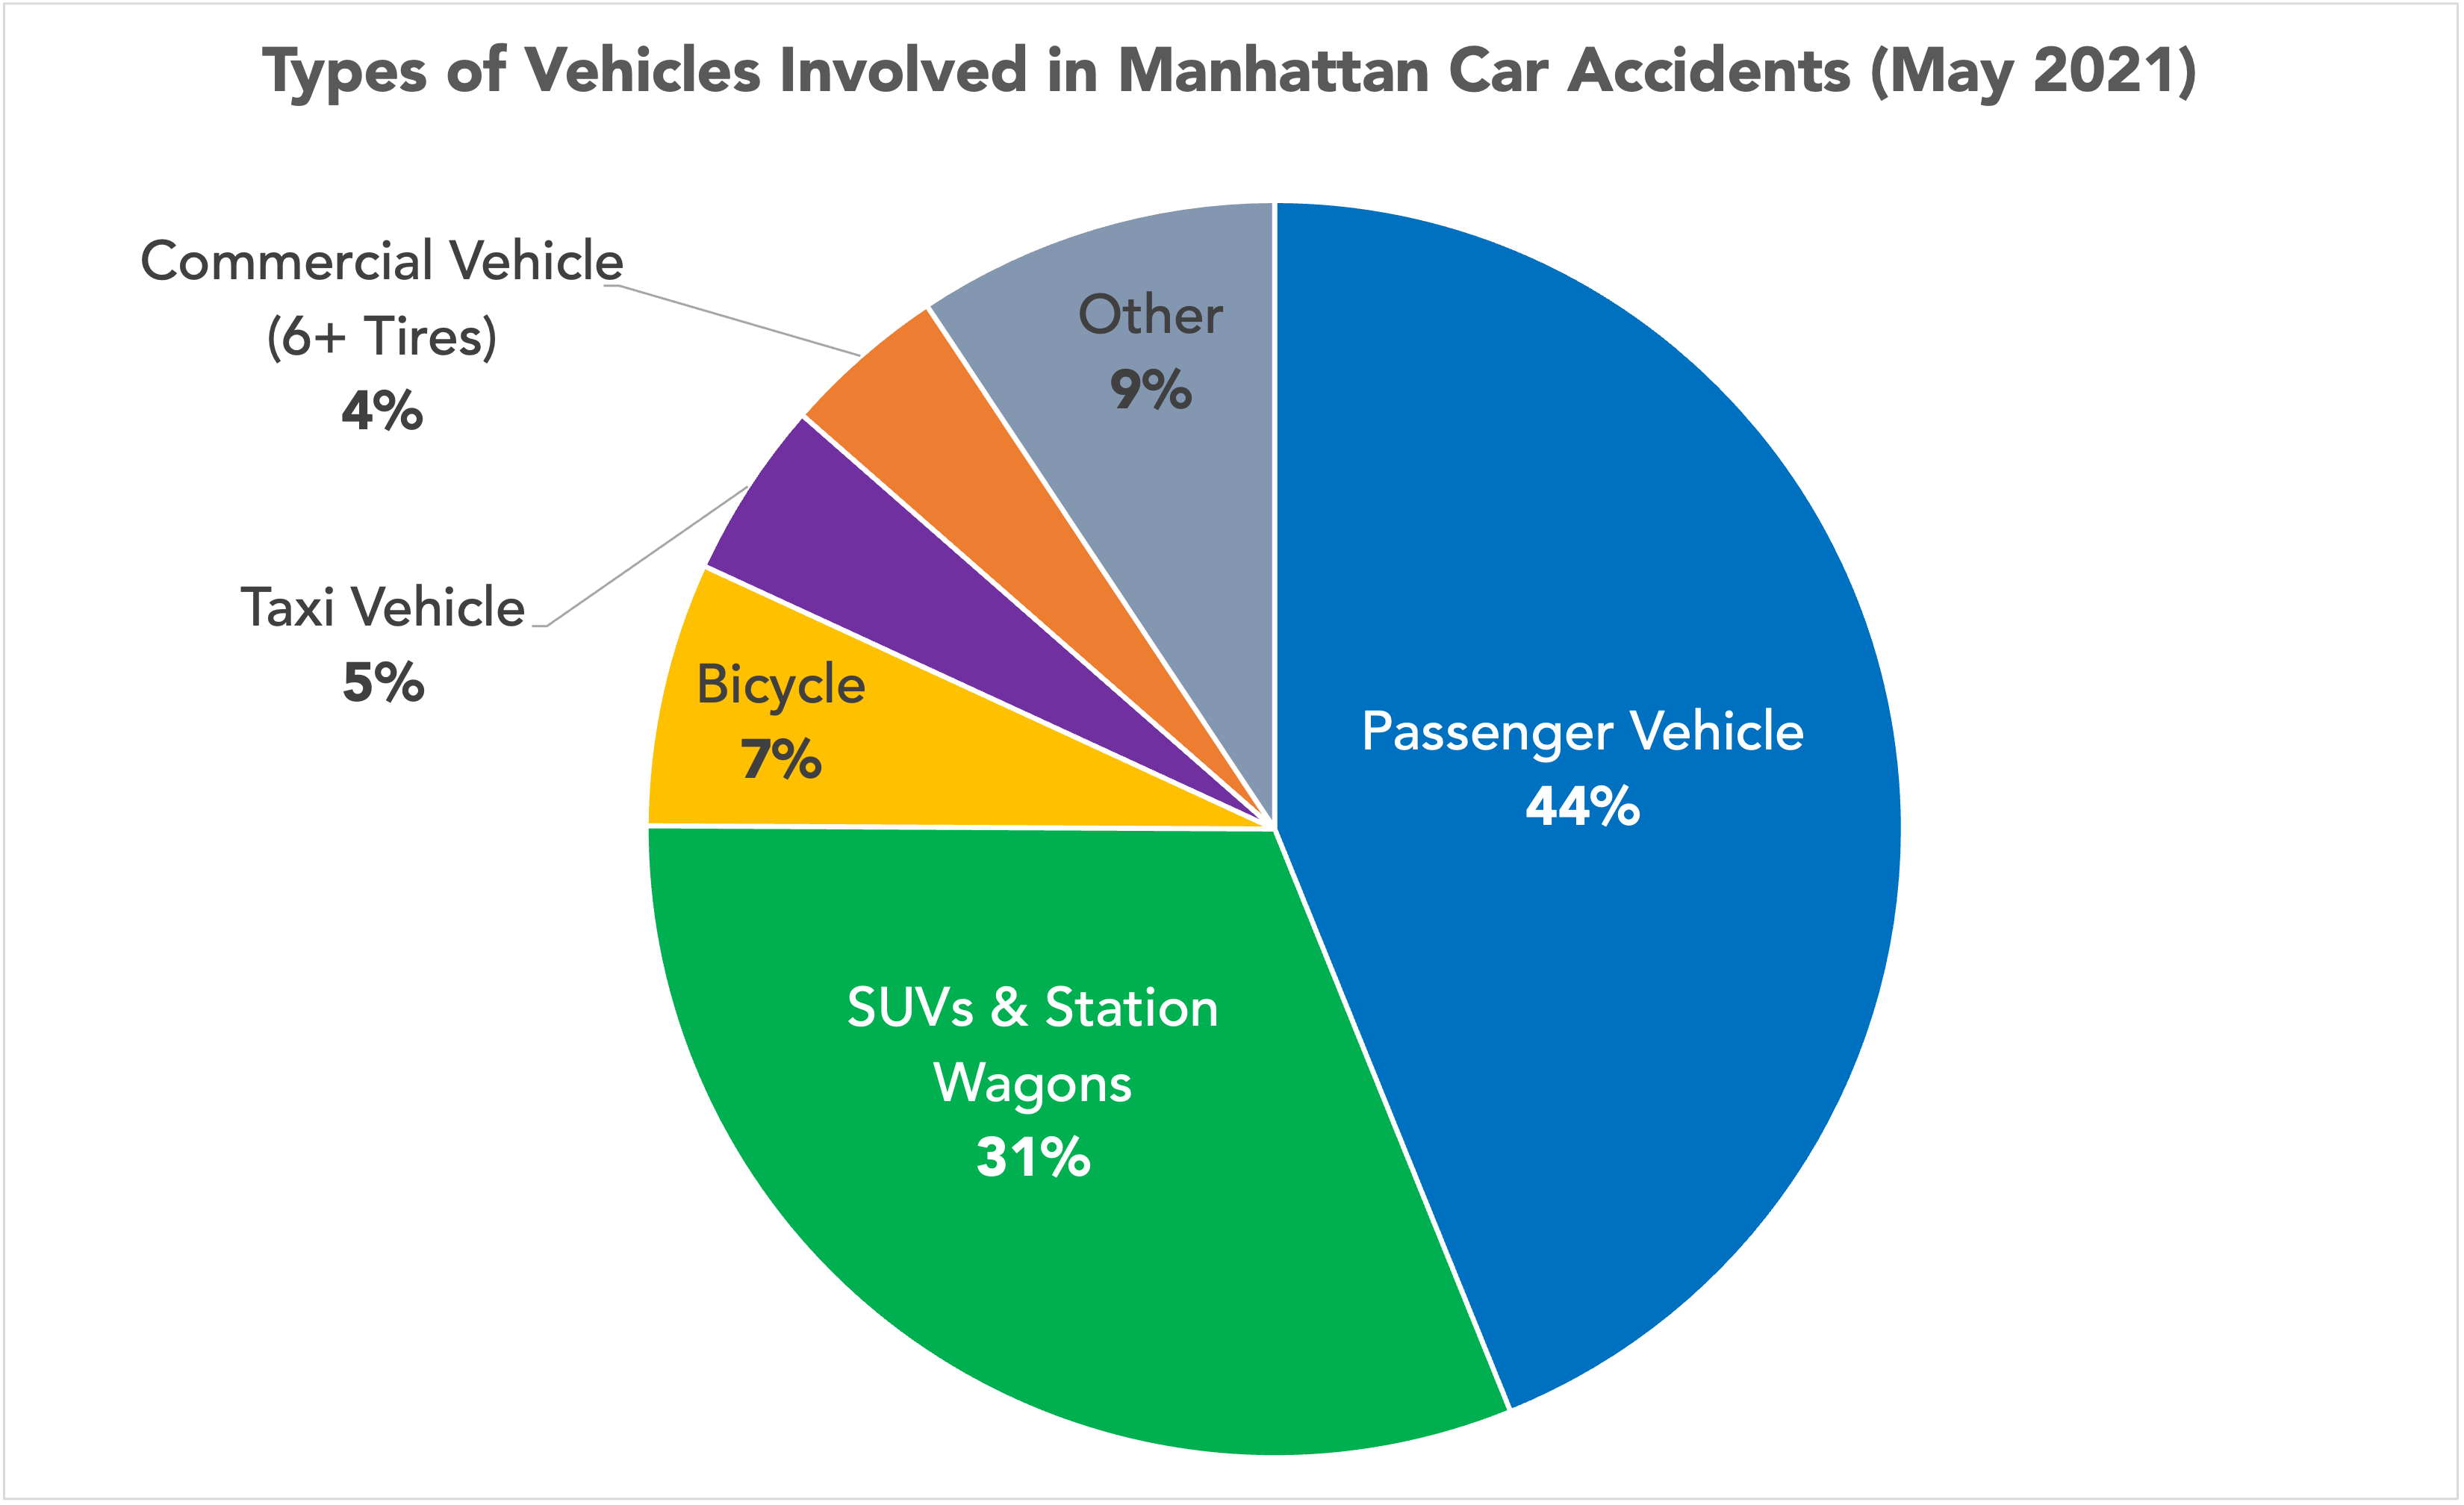 pie chart of the types of vehicles involved in Manhattan, NY car accidents